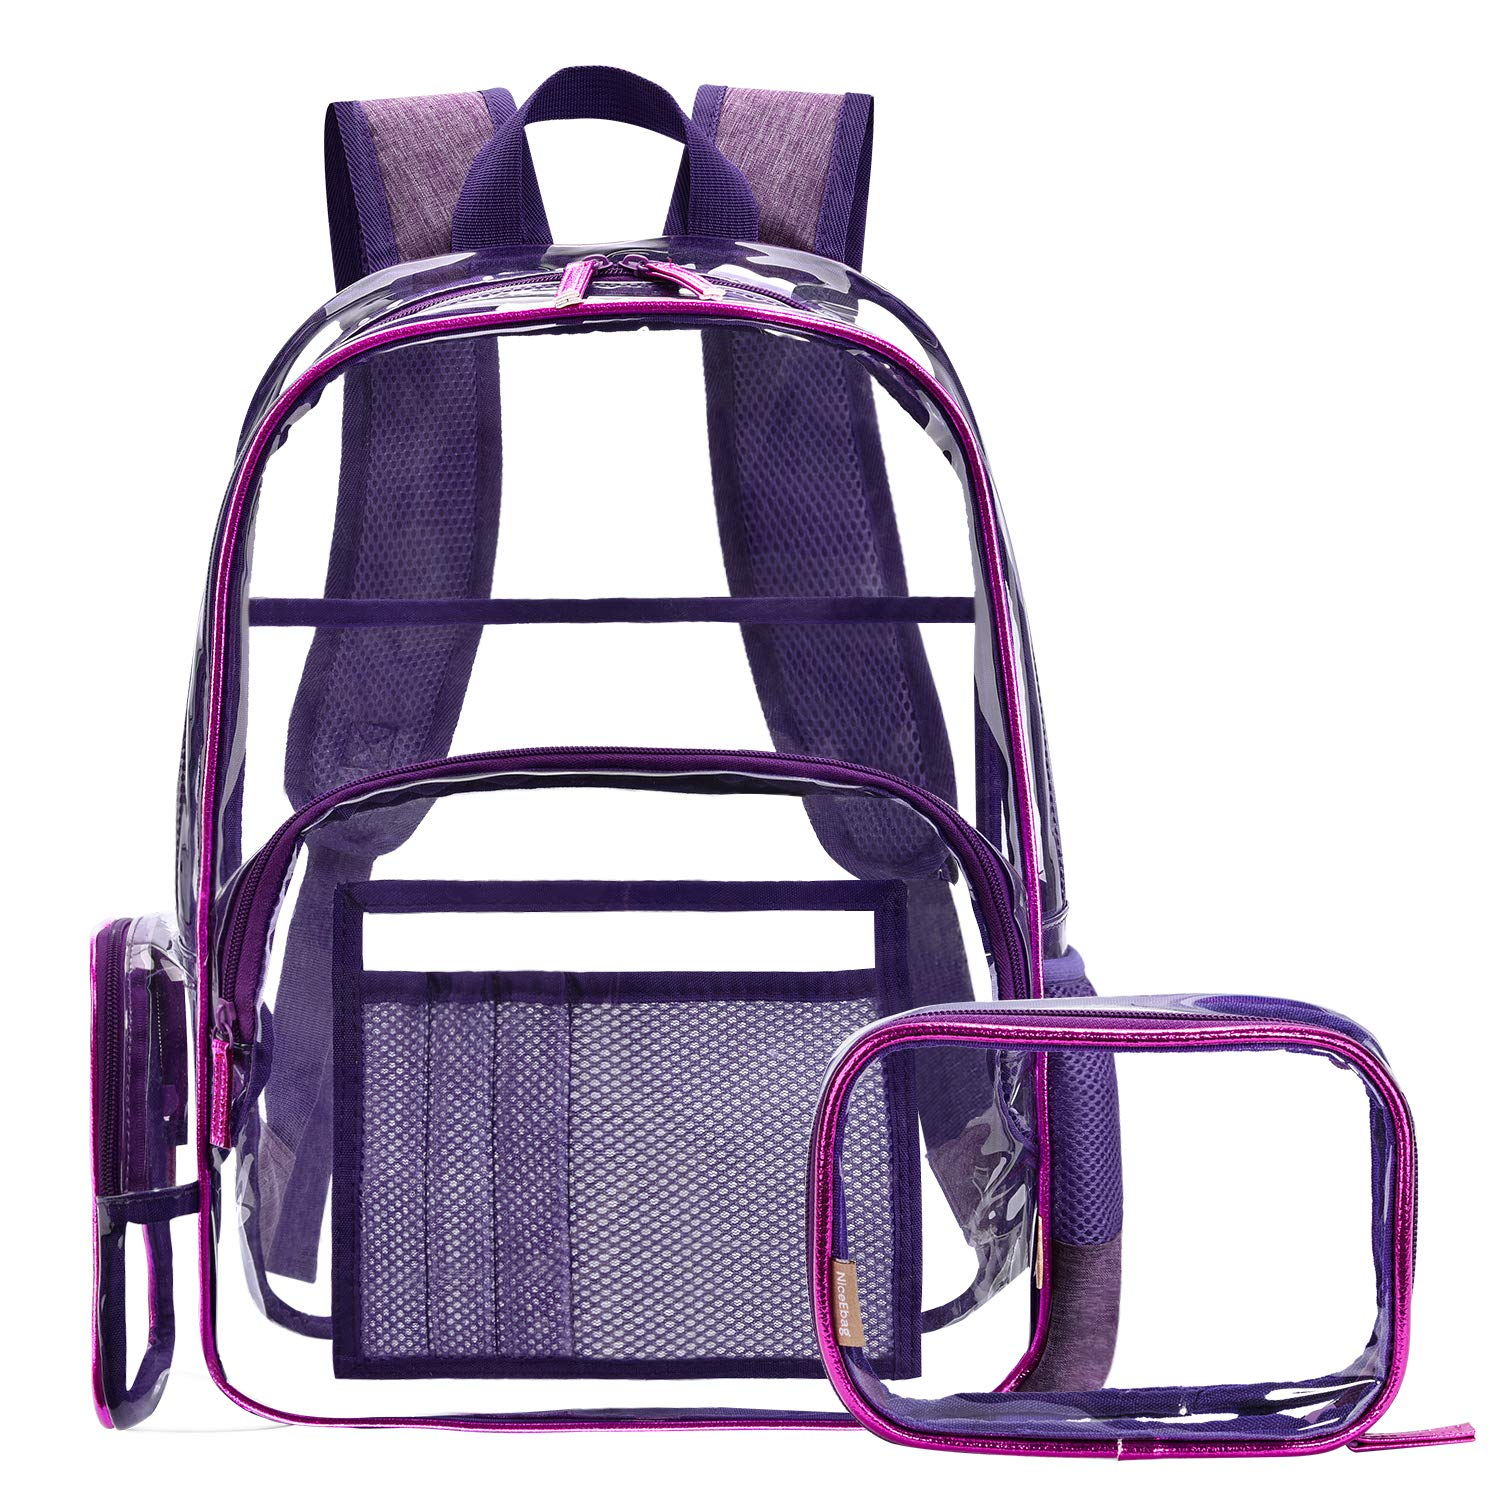 NiceEbag Clear Backpack with Cosmetic Bag Makeup Pouch,Clear Transparent PVC Backpack Multi-pockets School Bookbag See Through Travel Casual Rucksack with Pencil Case Fit 15.6 Inch Laptop,Noble Purple